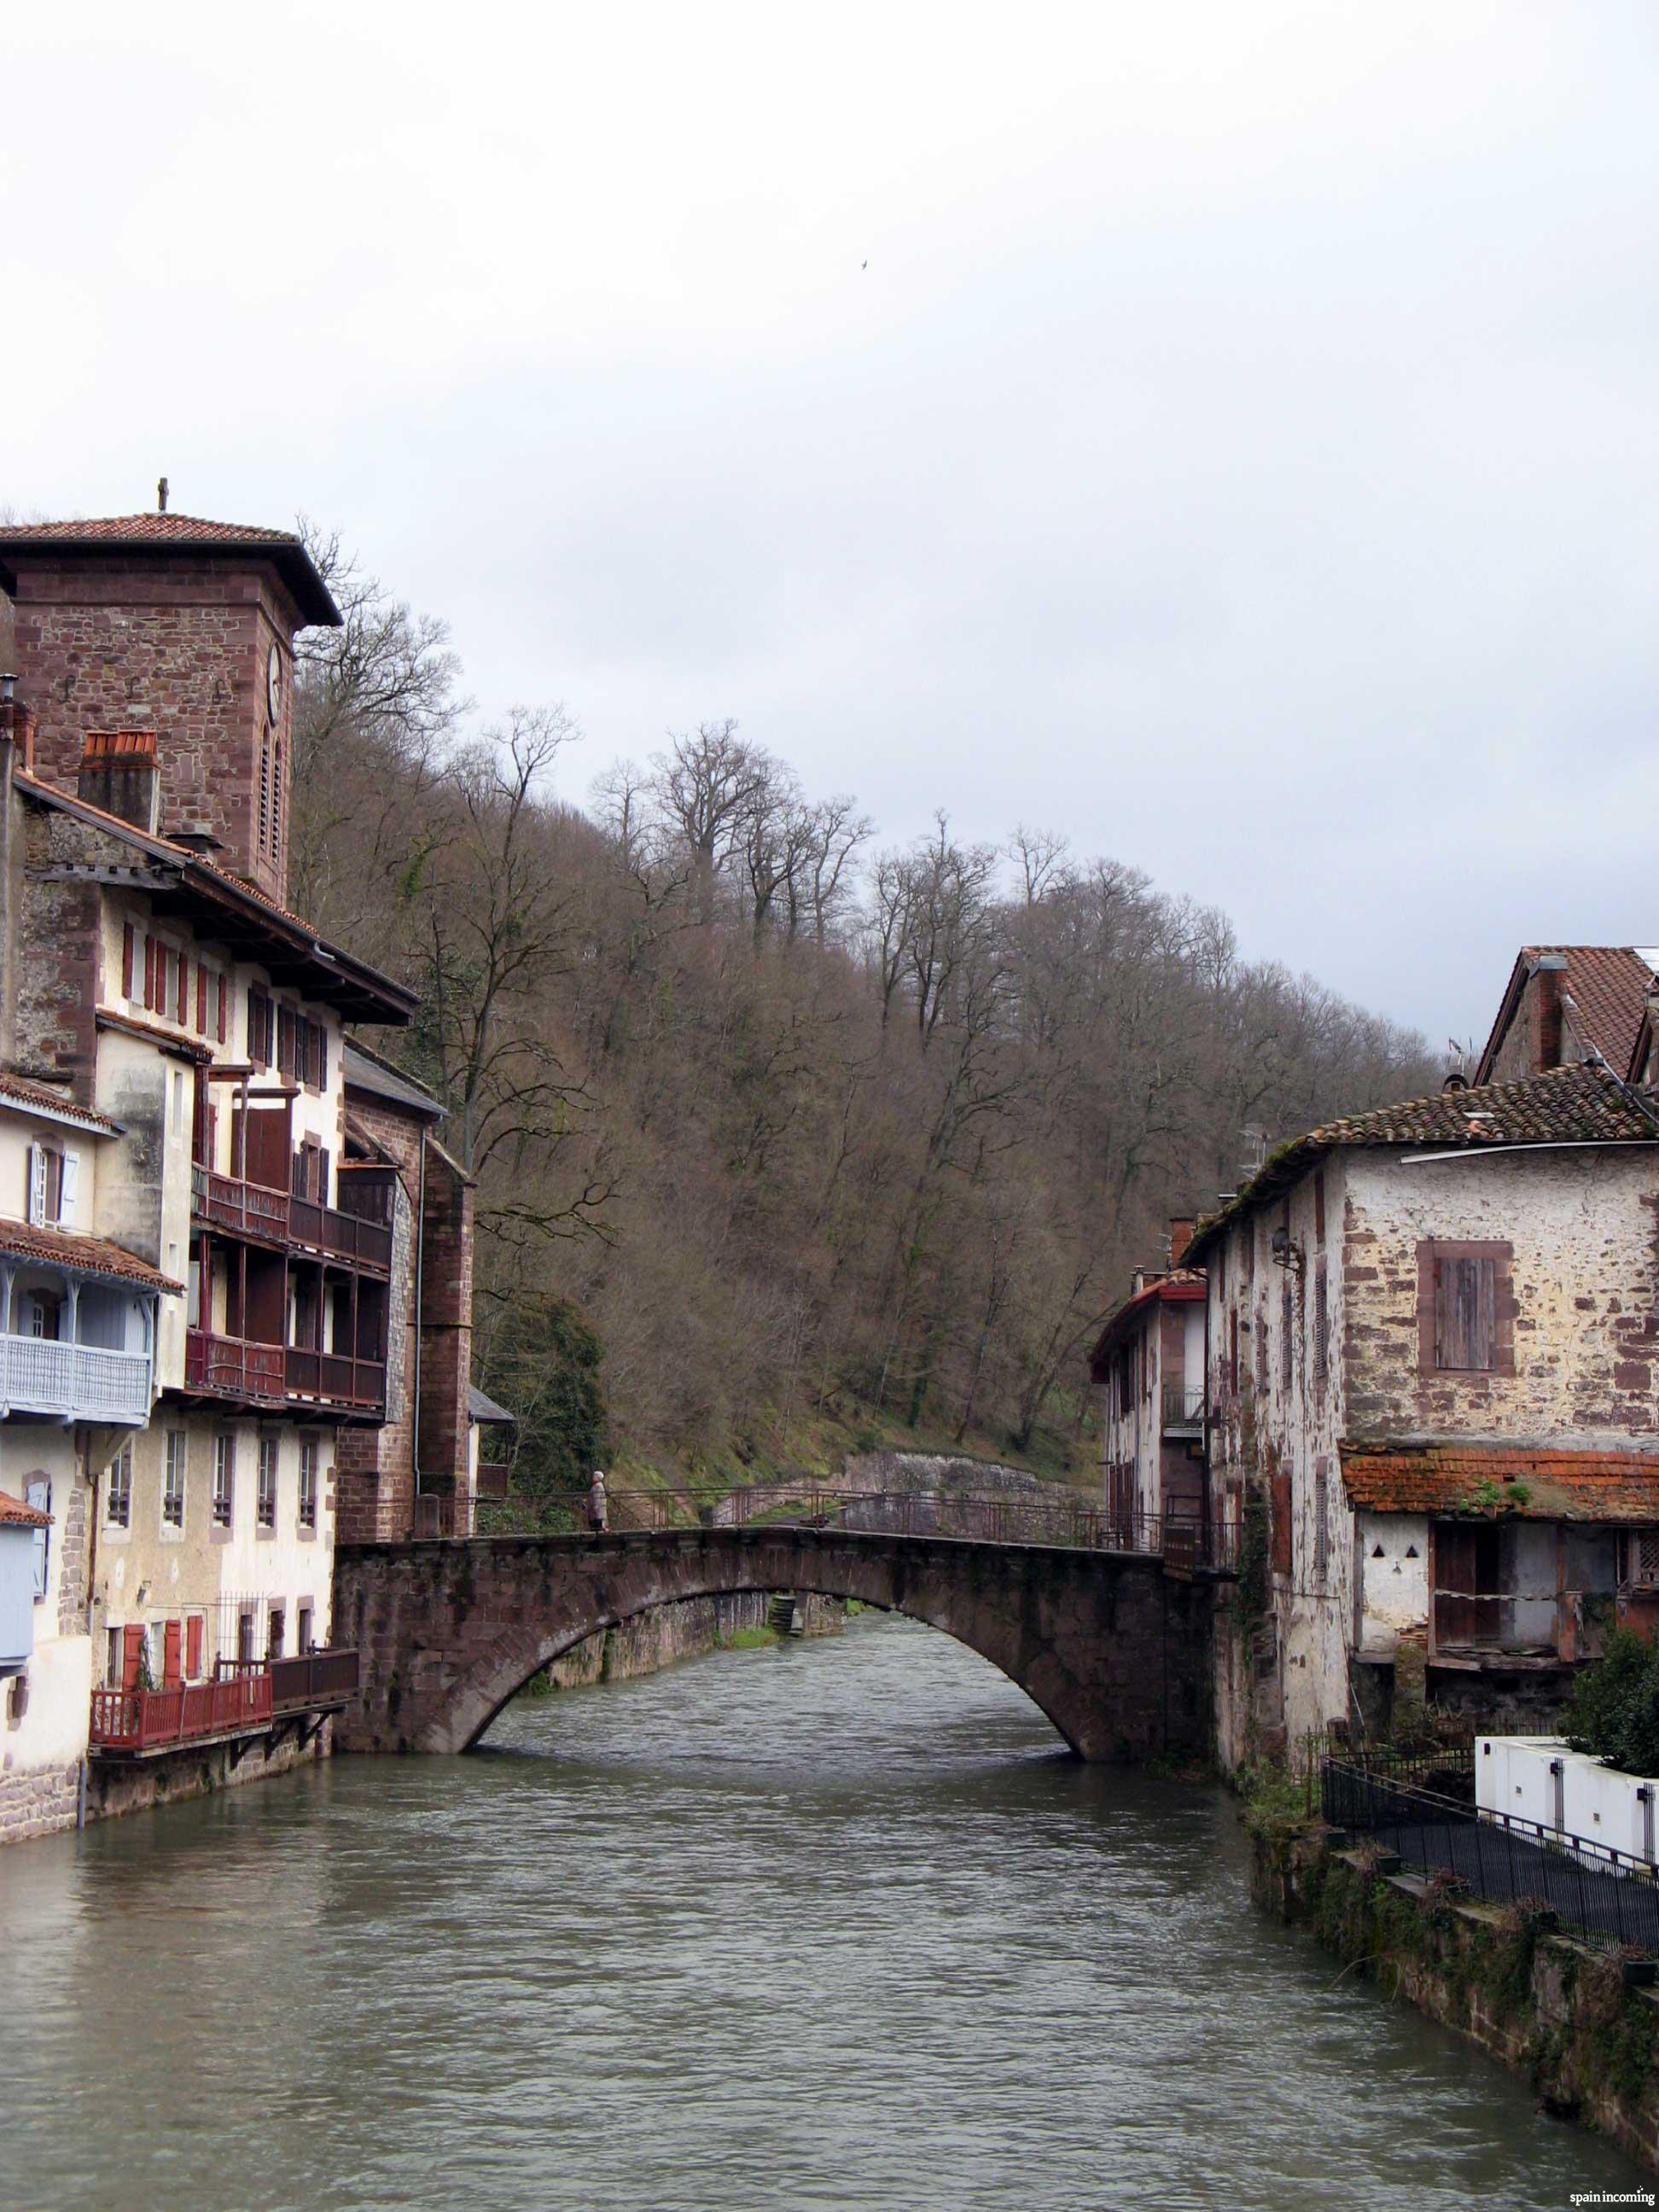 Nº2 starting point: Saint Jean Pied de Port